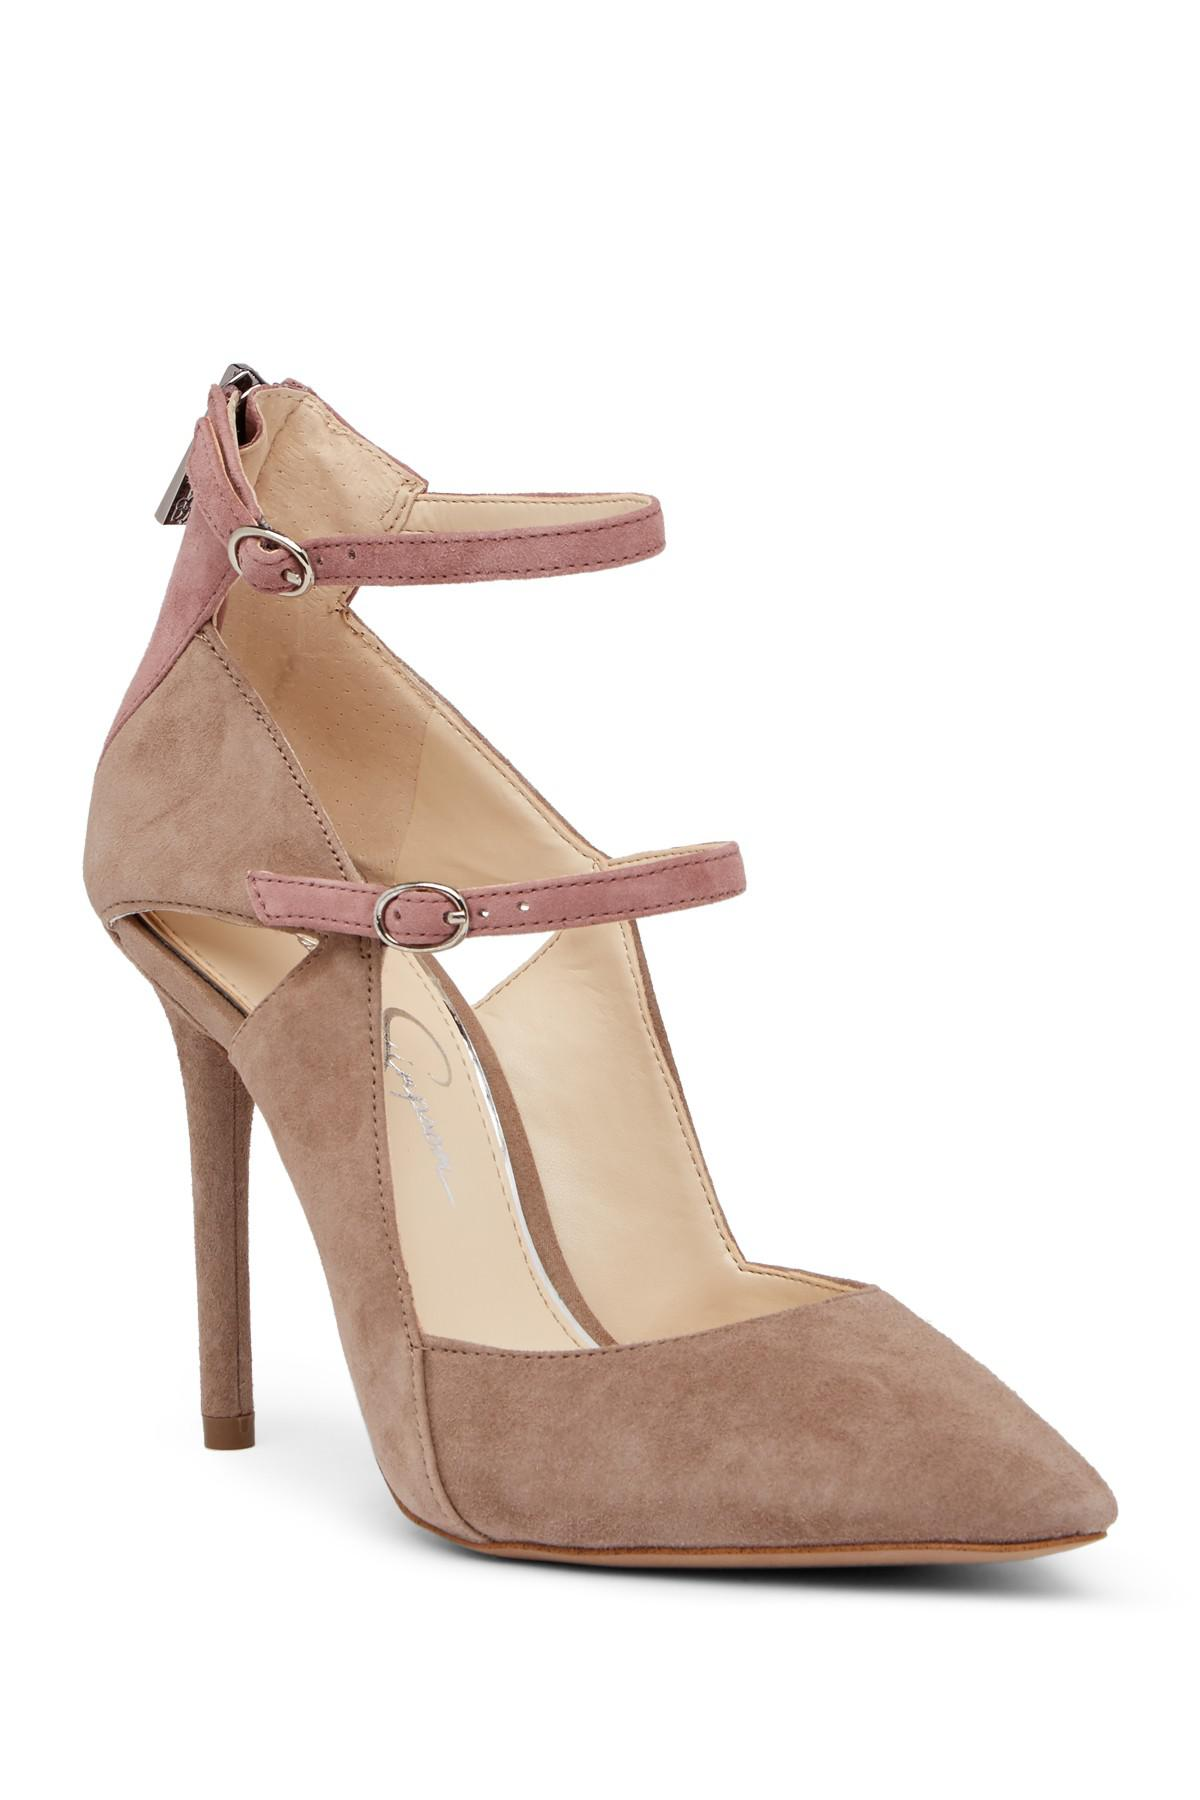 118e11a668a Jessica Simpson Liviana Pointed Toe Suede Pump - Lyst